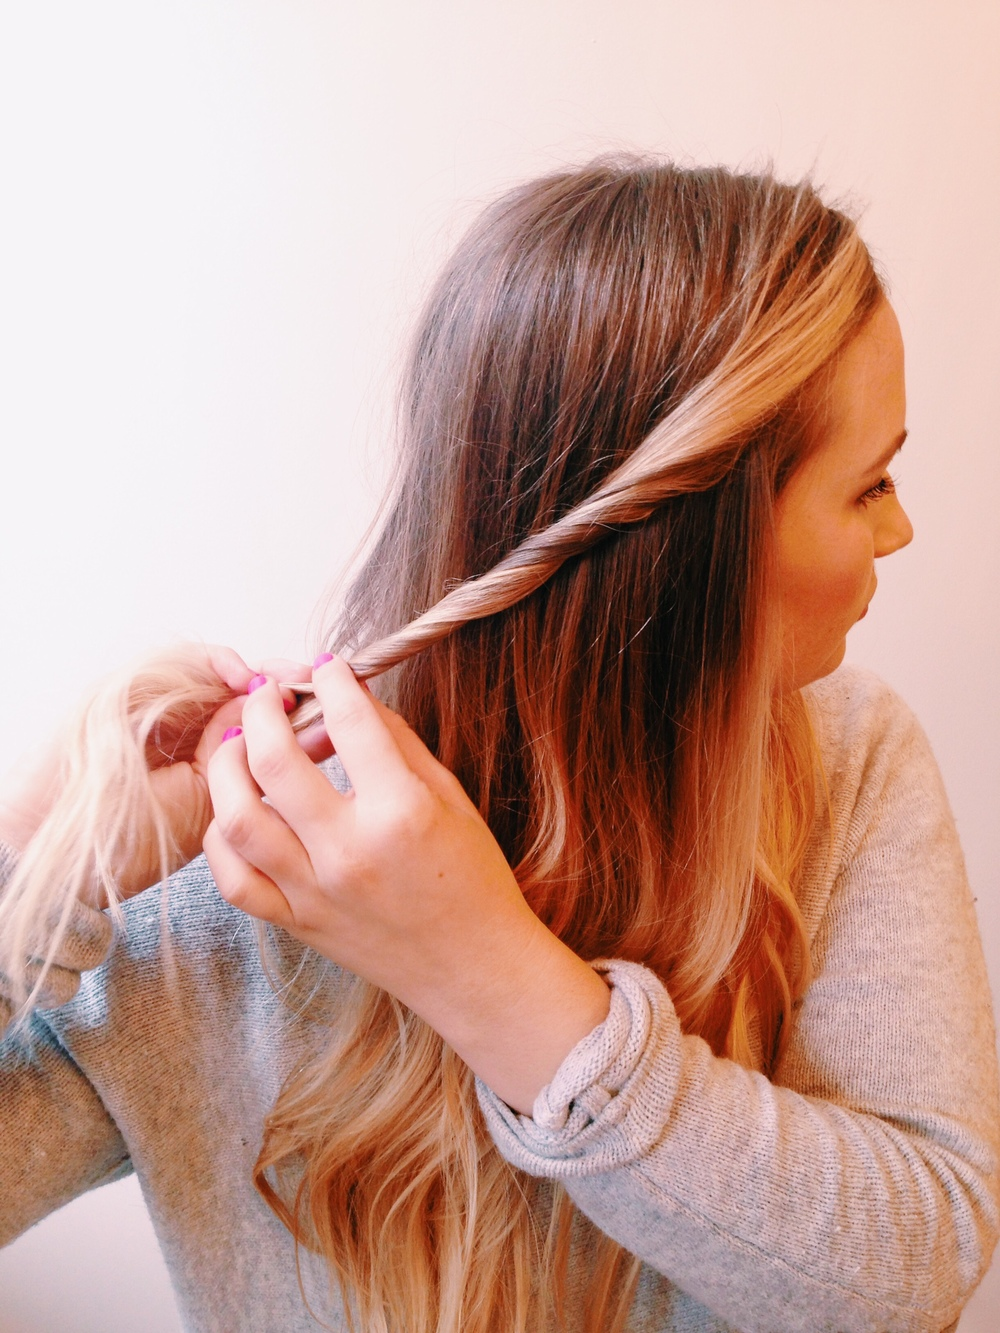 Beginning on one side, gather desired amount of hair and begin twisting.